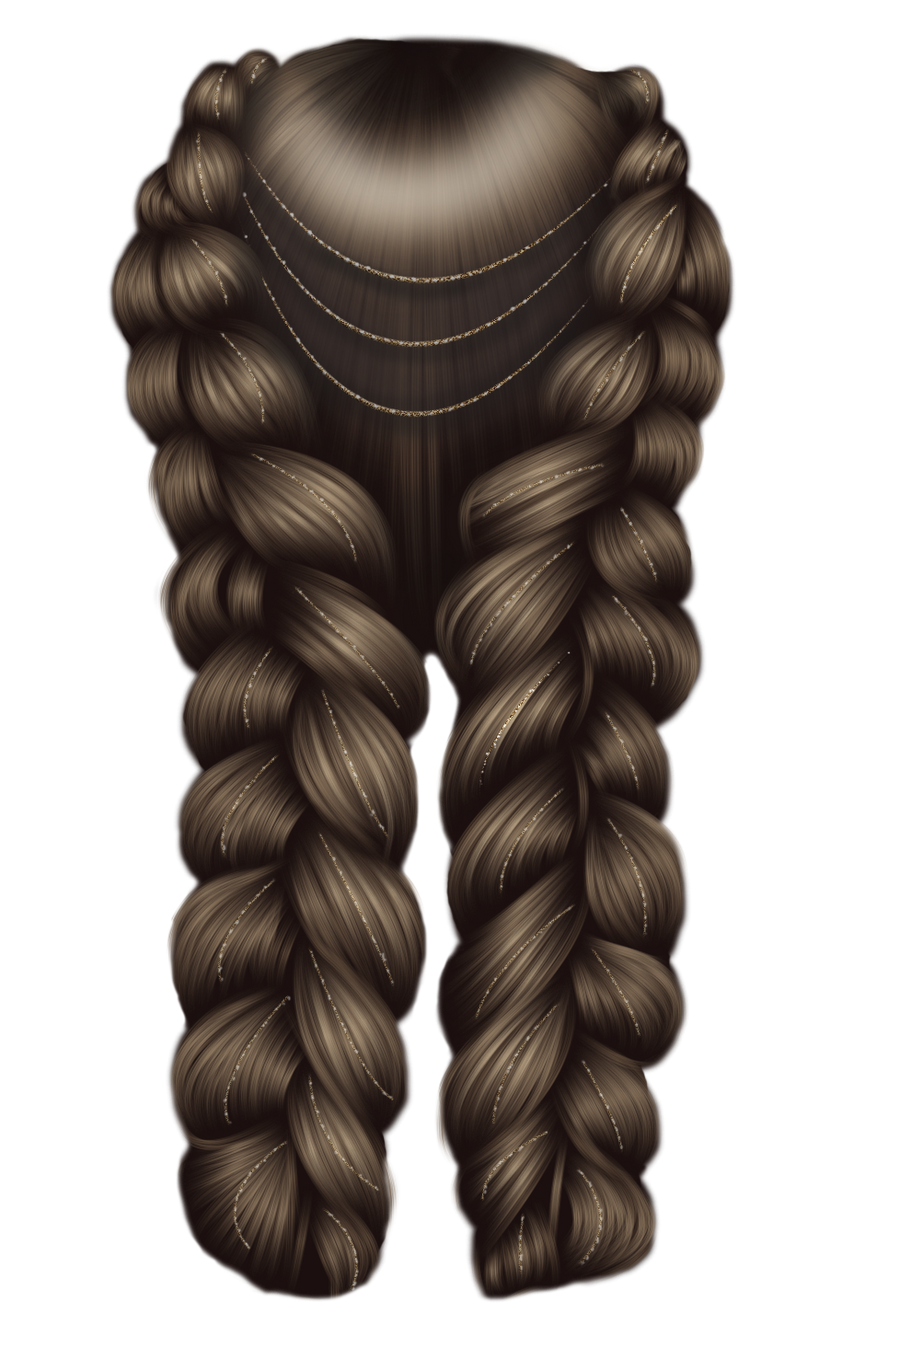 Fantasy Hair 10 by hellonlegs